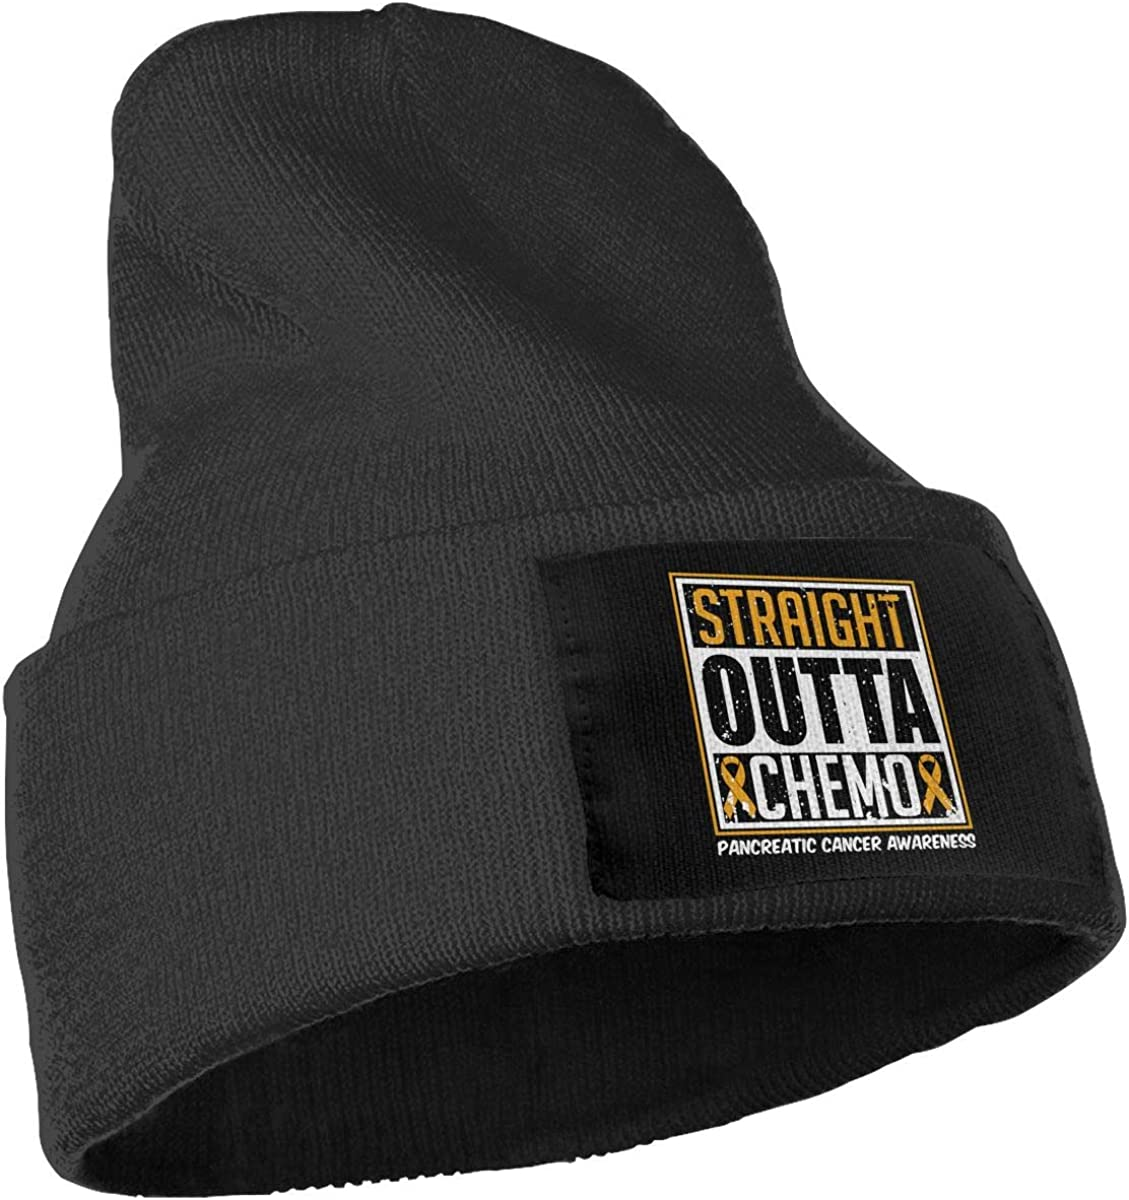 COLLJL-8 Men /& Women Straight Outta Chemo Pancreatic Cancer Awareness Outdoor Fashion Knit Beanies Hat Soft Winter Knit Caps